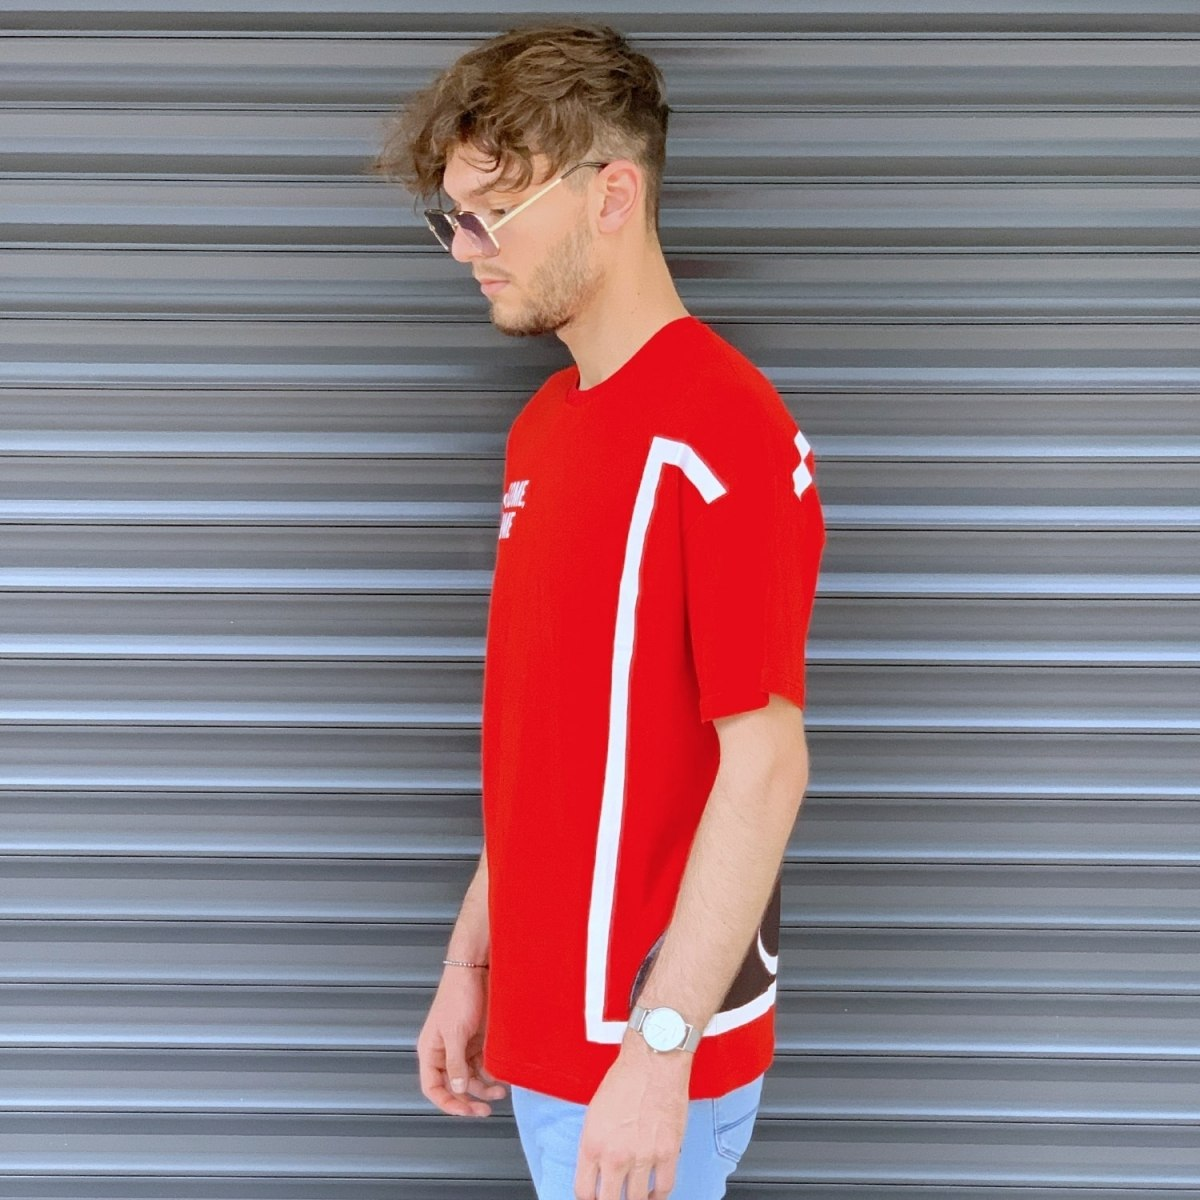 Men's Comfort Round Neck T-Shirt In Red Mv Premium Brand - 3